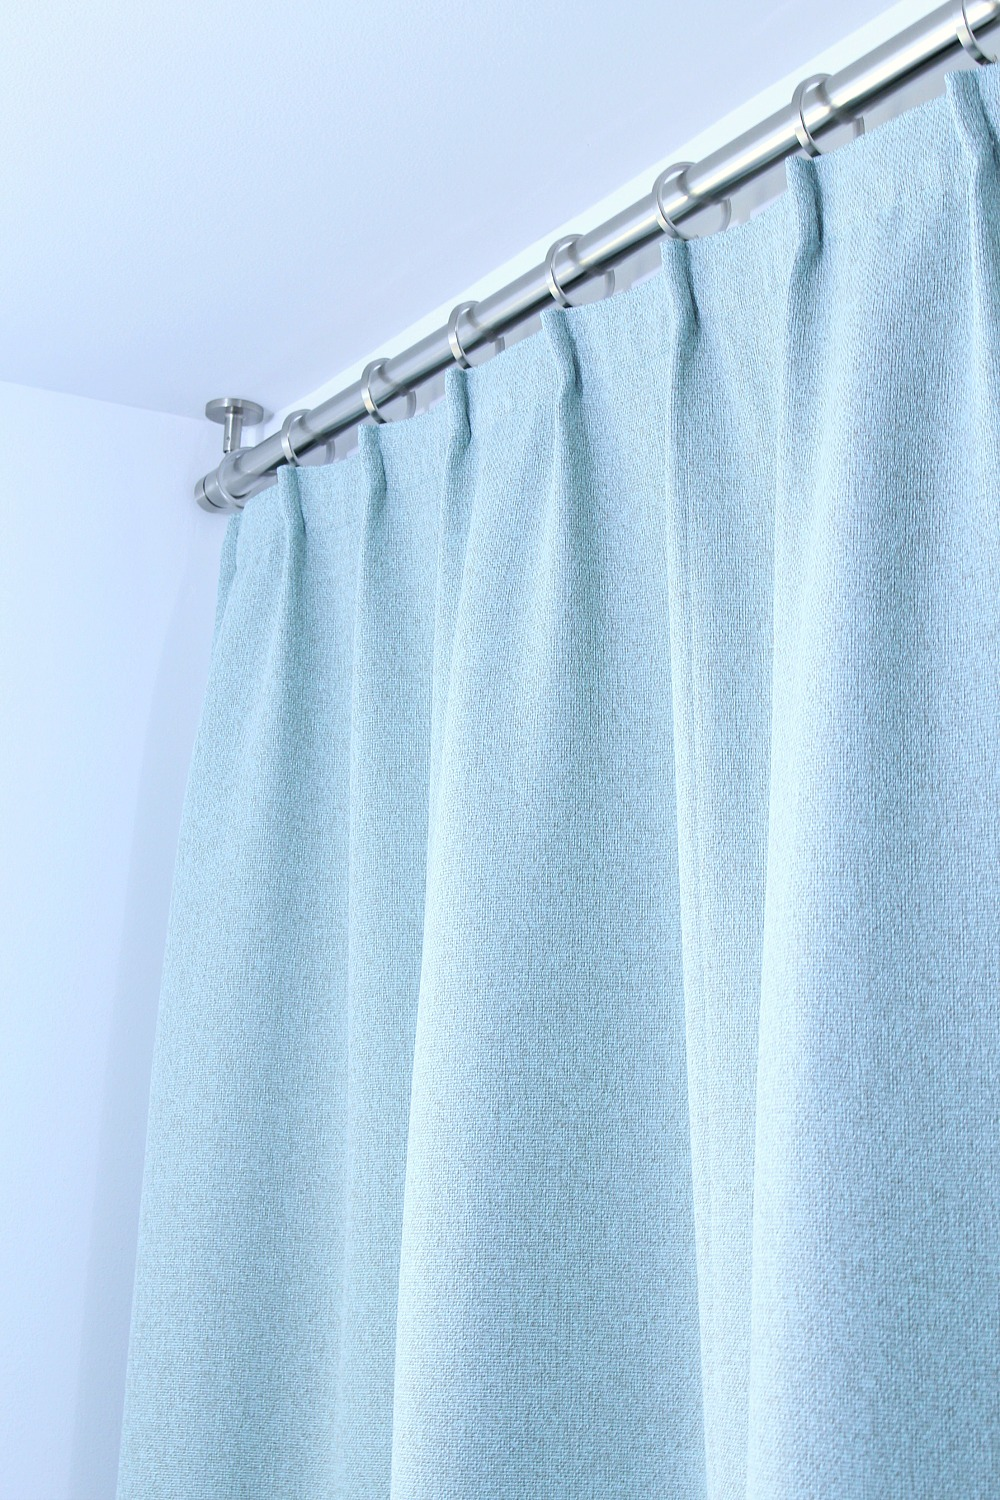 Bathroom Update Ceiling Mounted Shower Curtain Rod Turquoise Tweed Pleated Shower Curtain